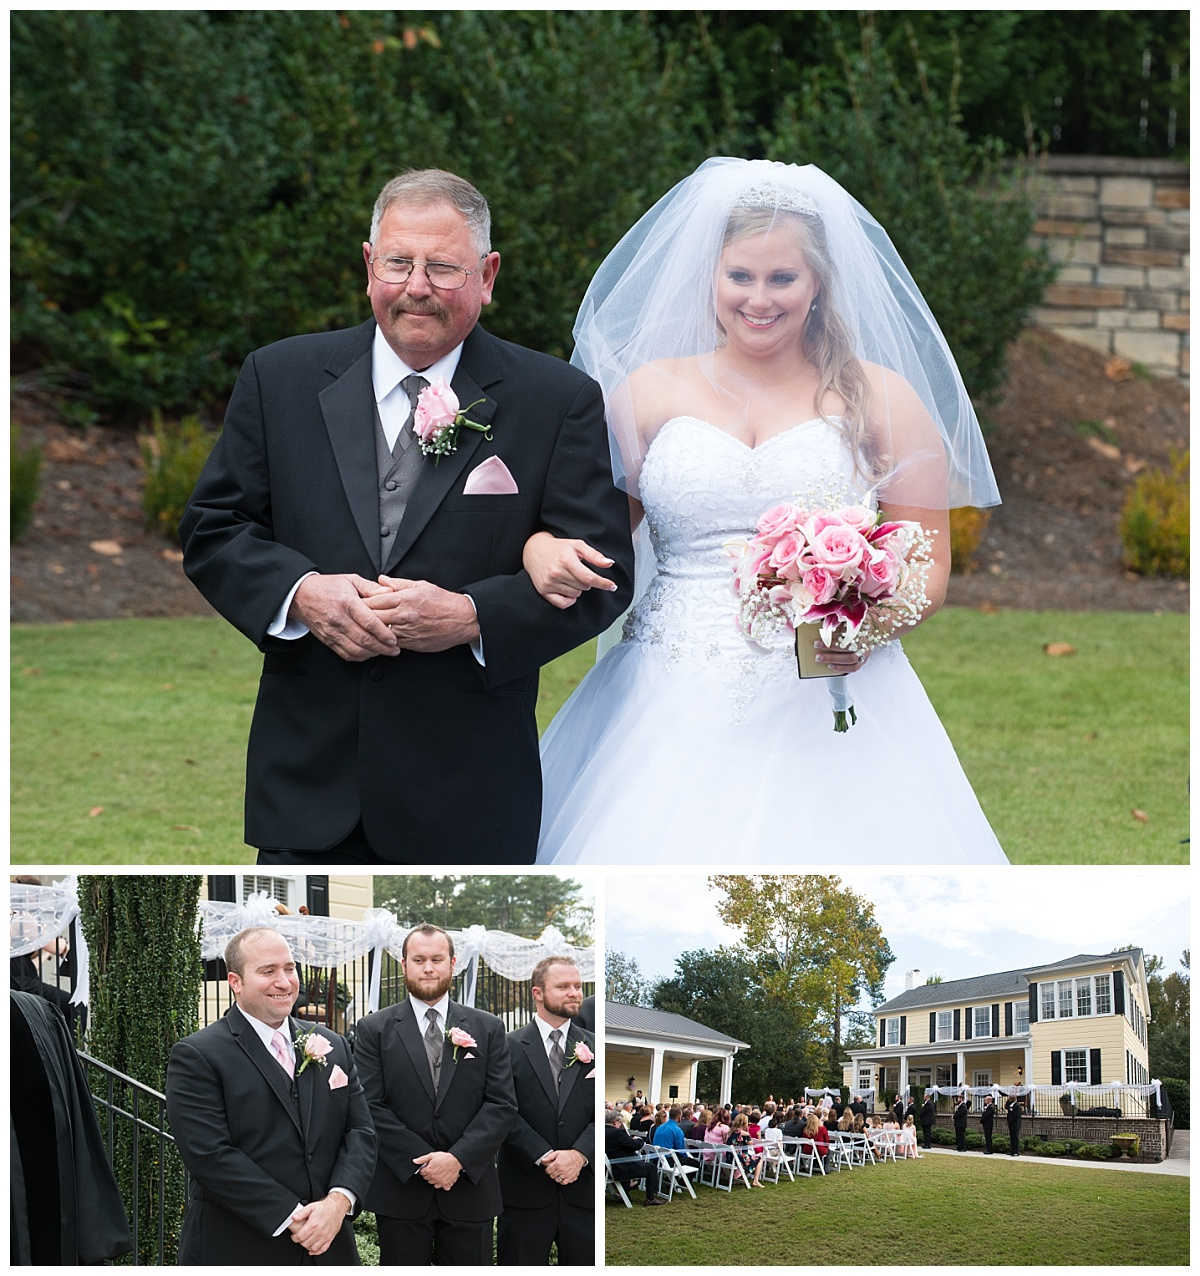 Springdale House and gardens ceremony